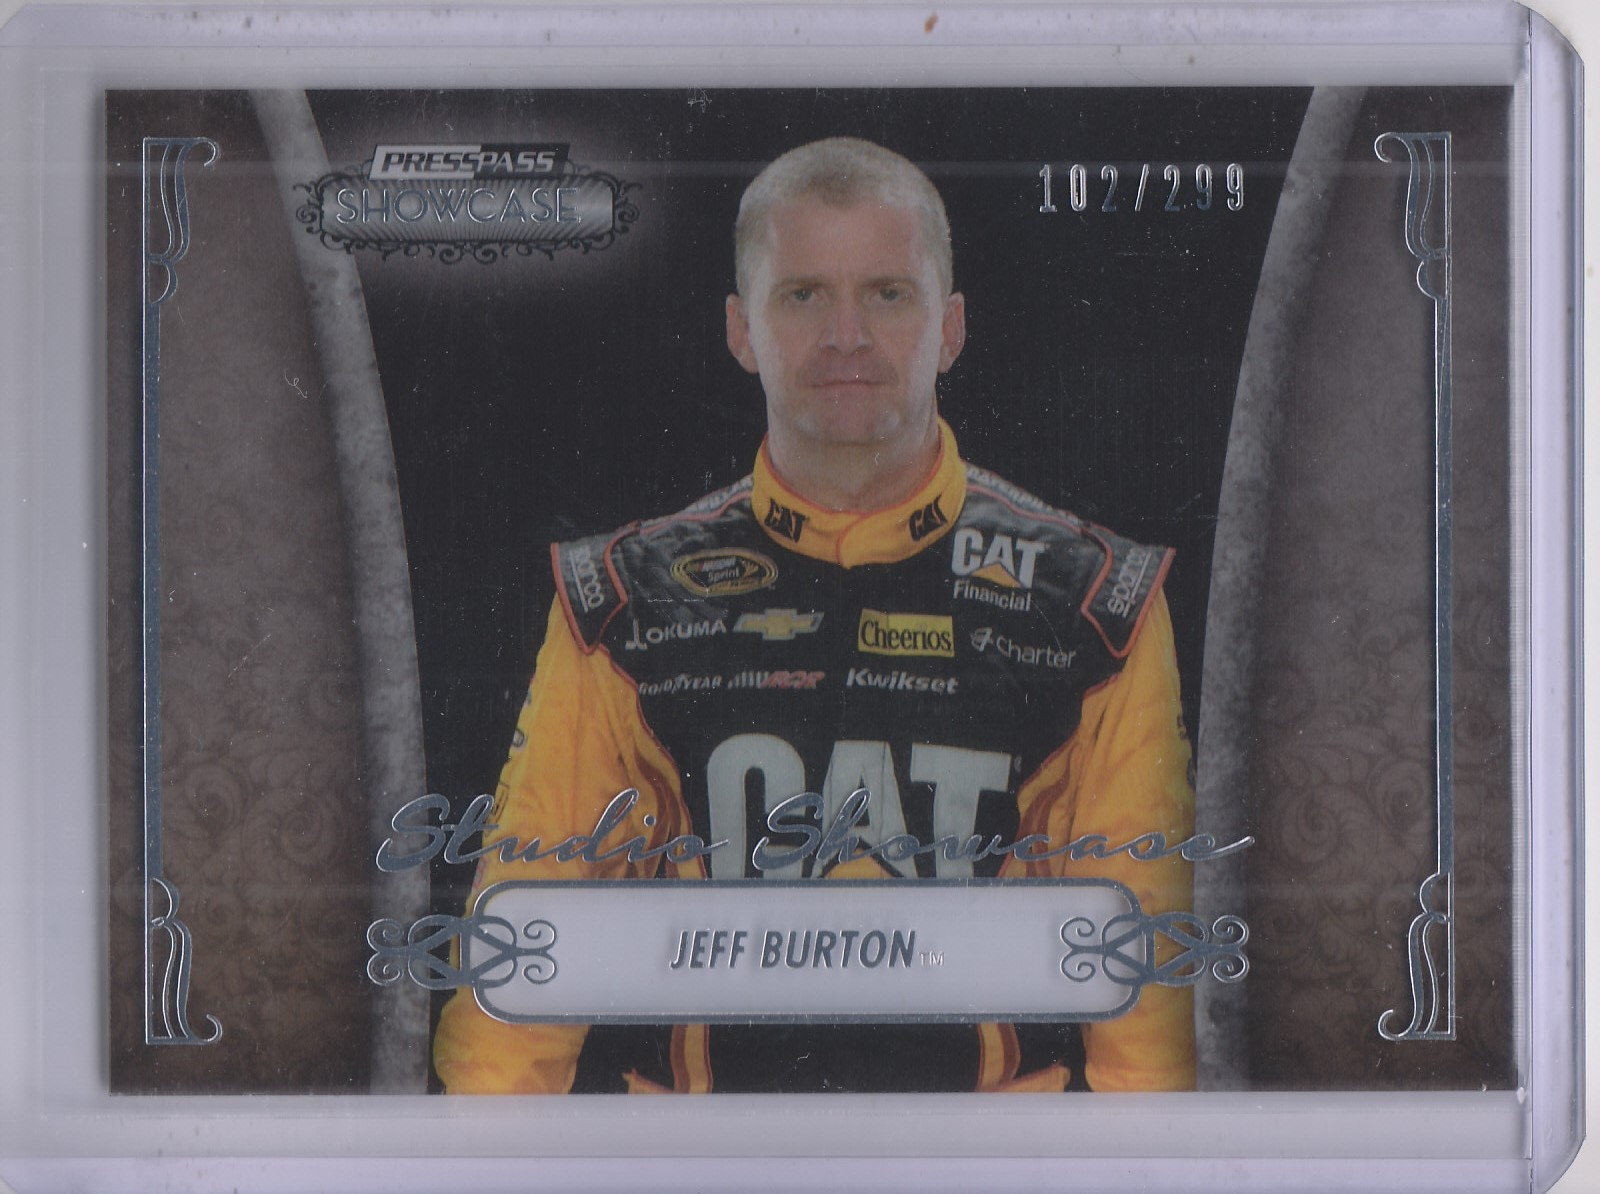 2013 Press Pass Showcase Studio Showcase #8 Jeff Burton